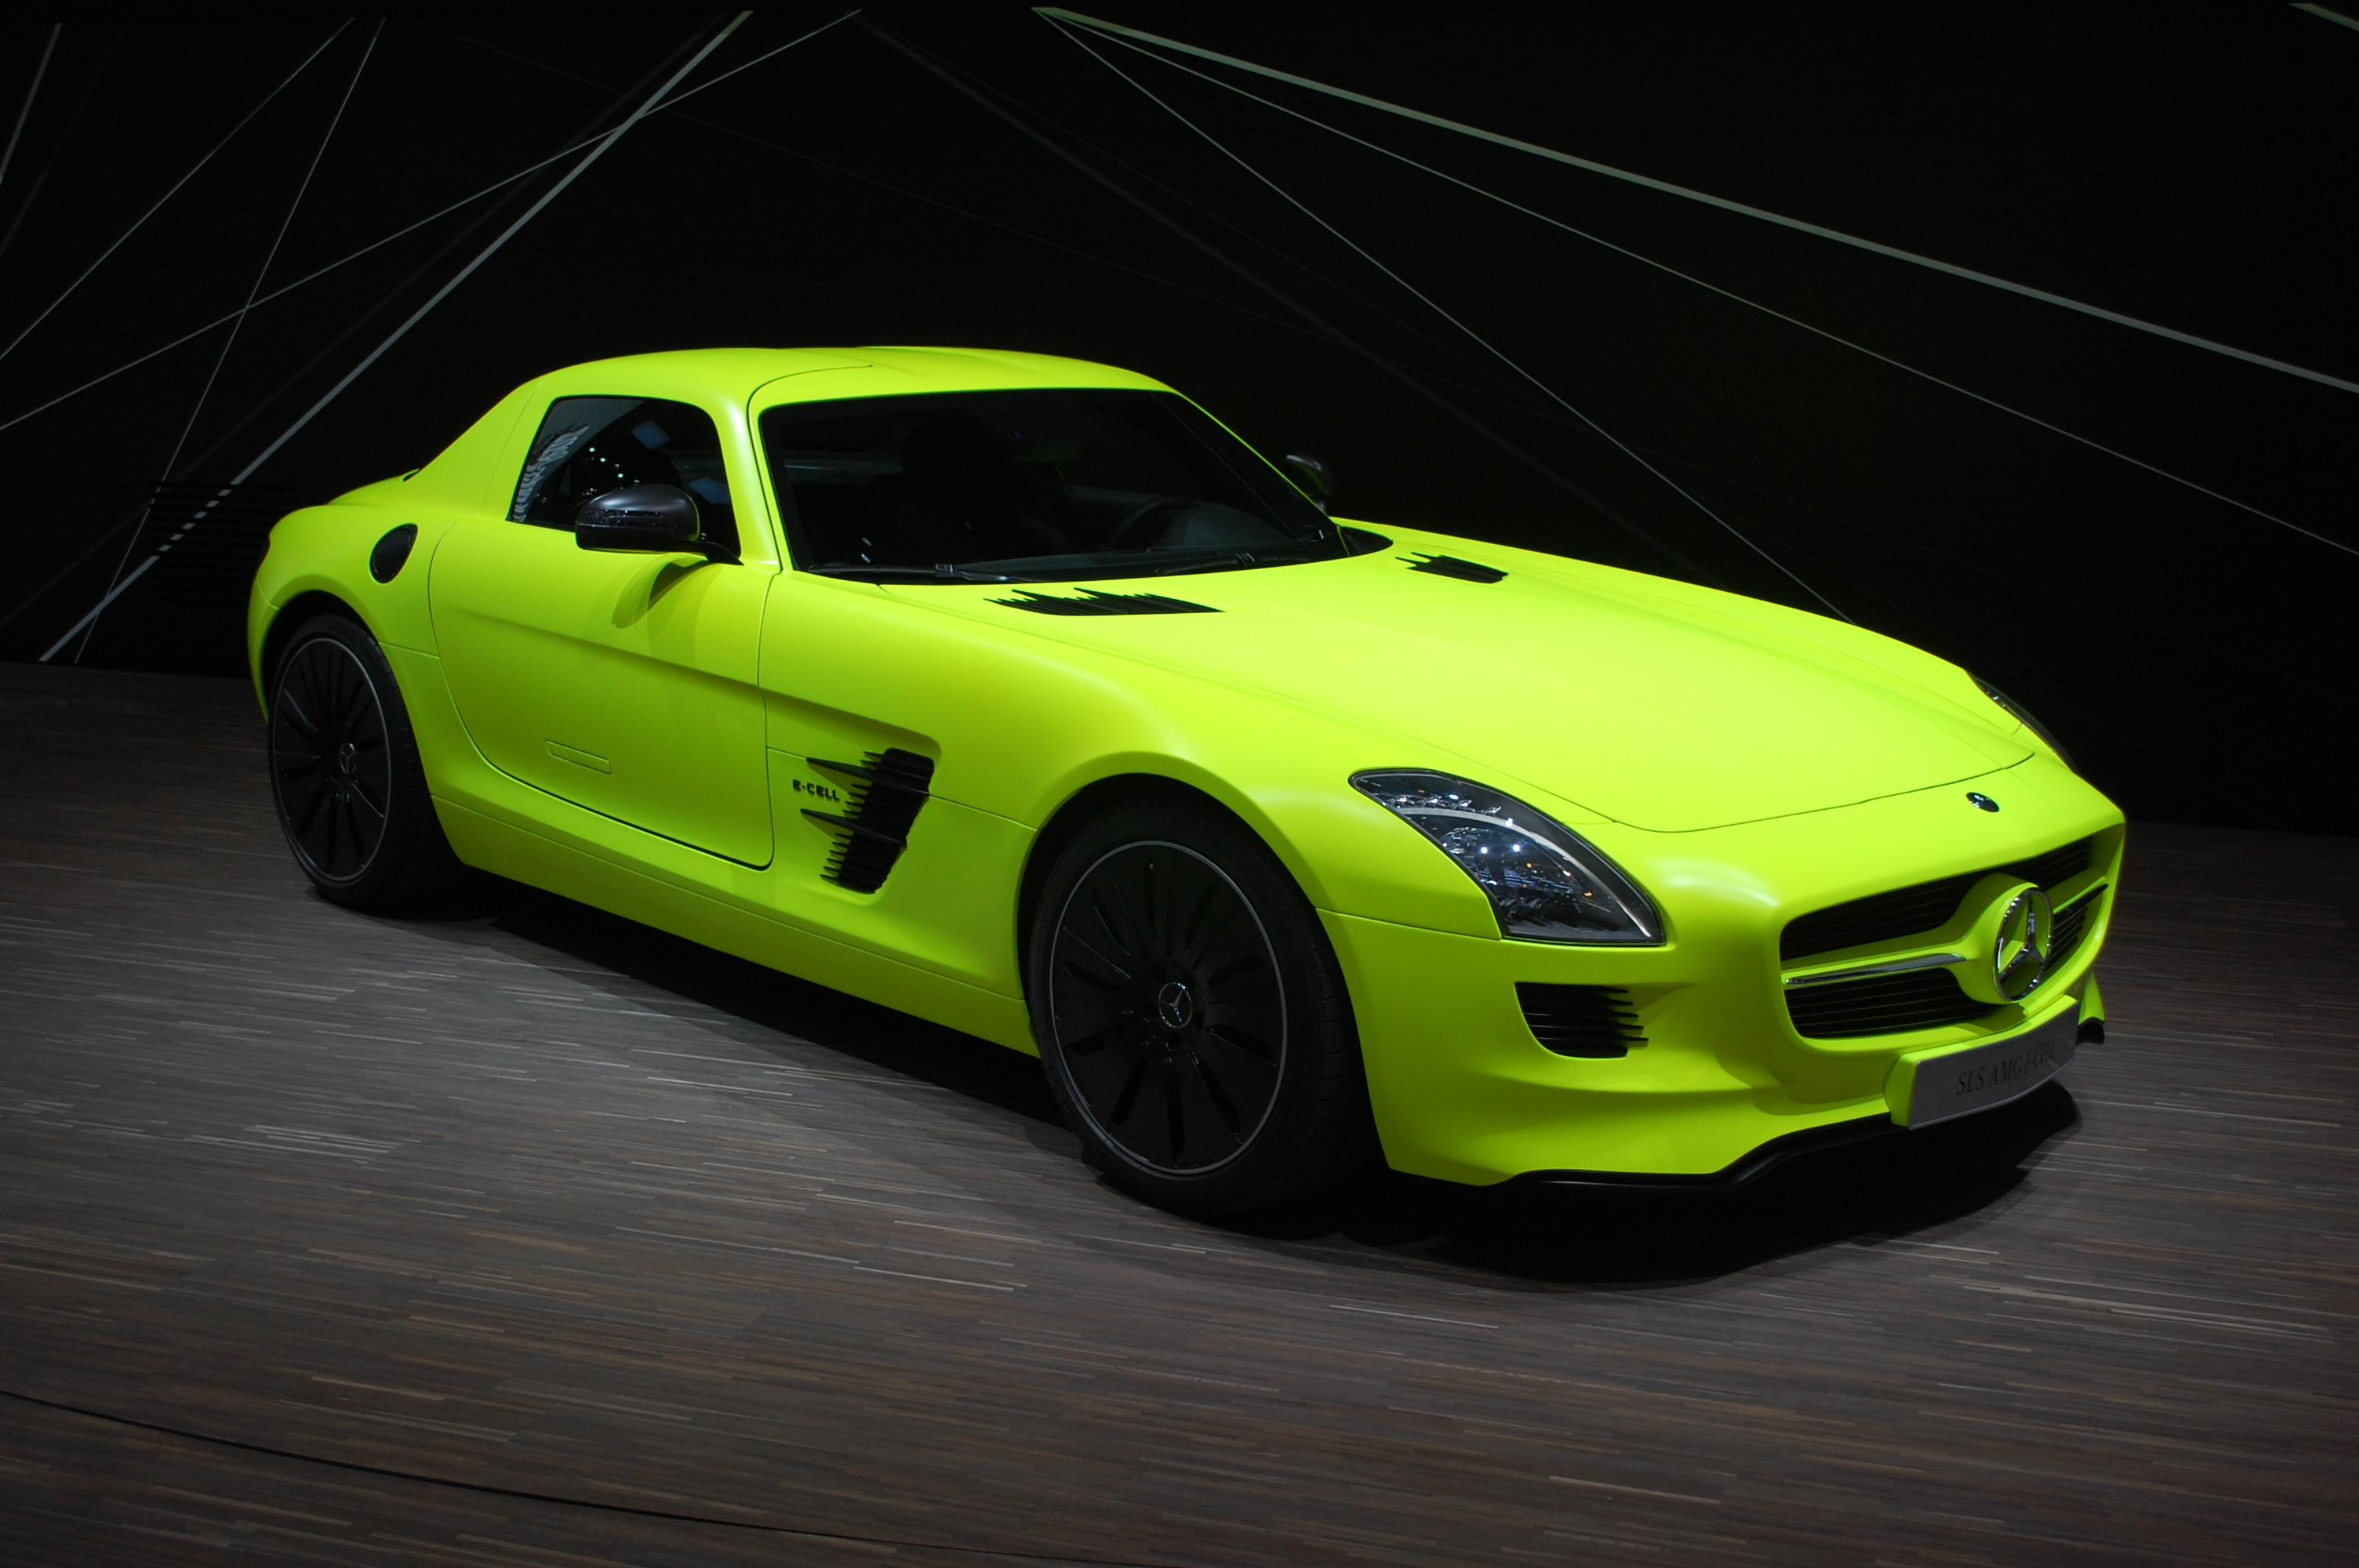 Mercedes benz sls amg e cell f1 inspired electric supercar for Silverlit mercedes benz sls amg